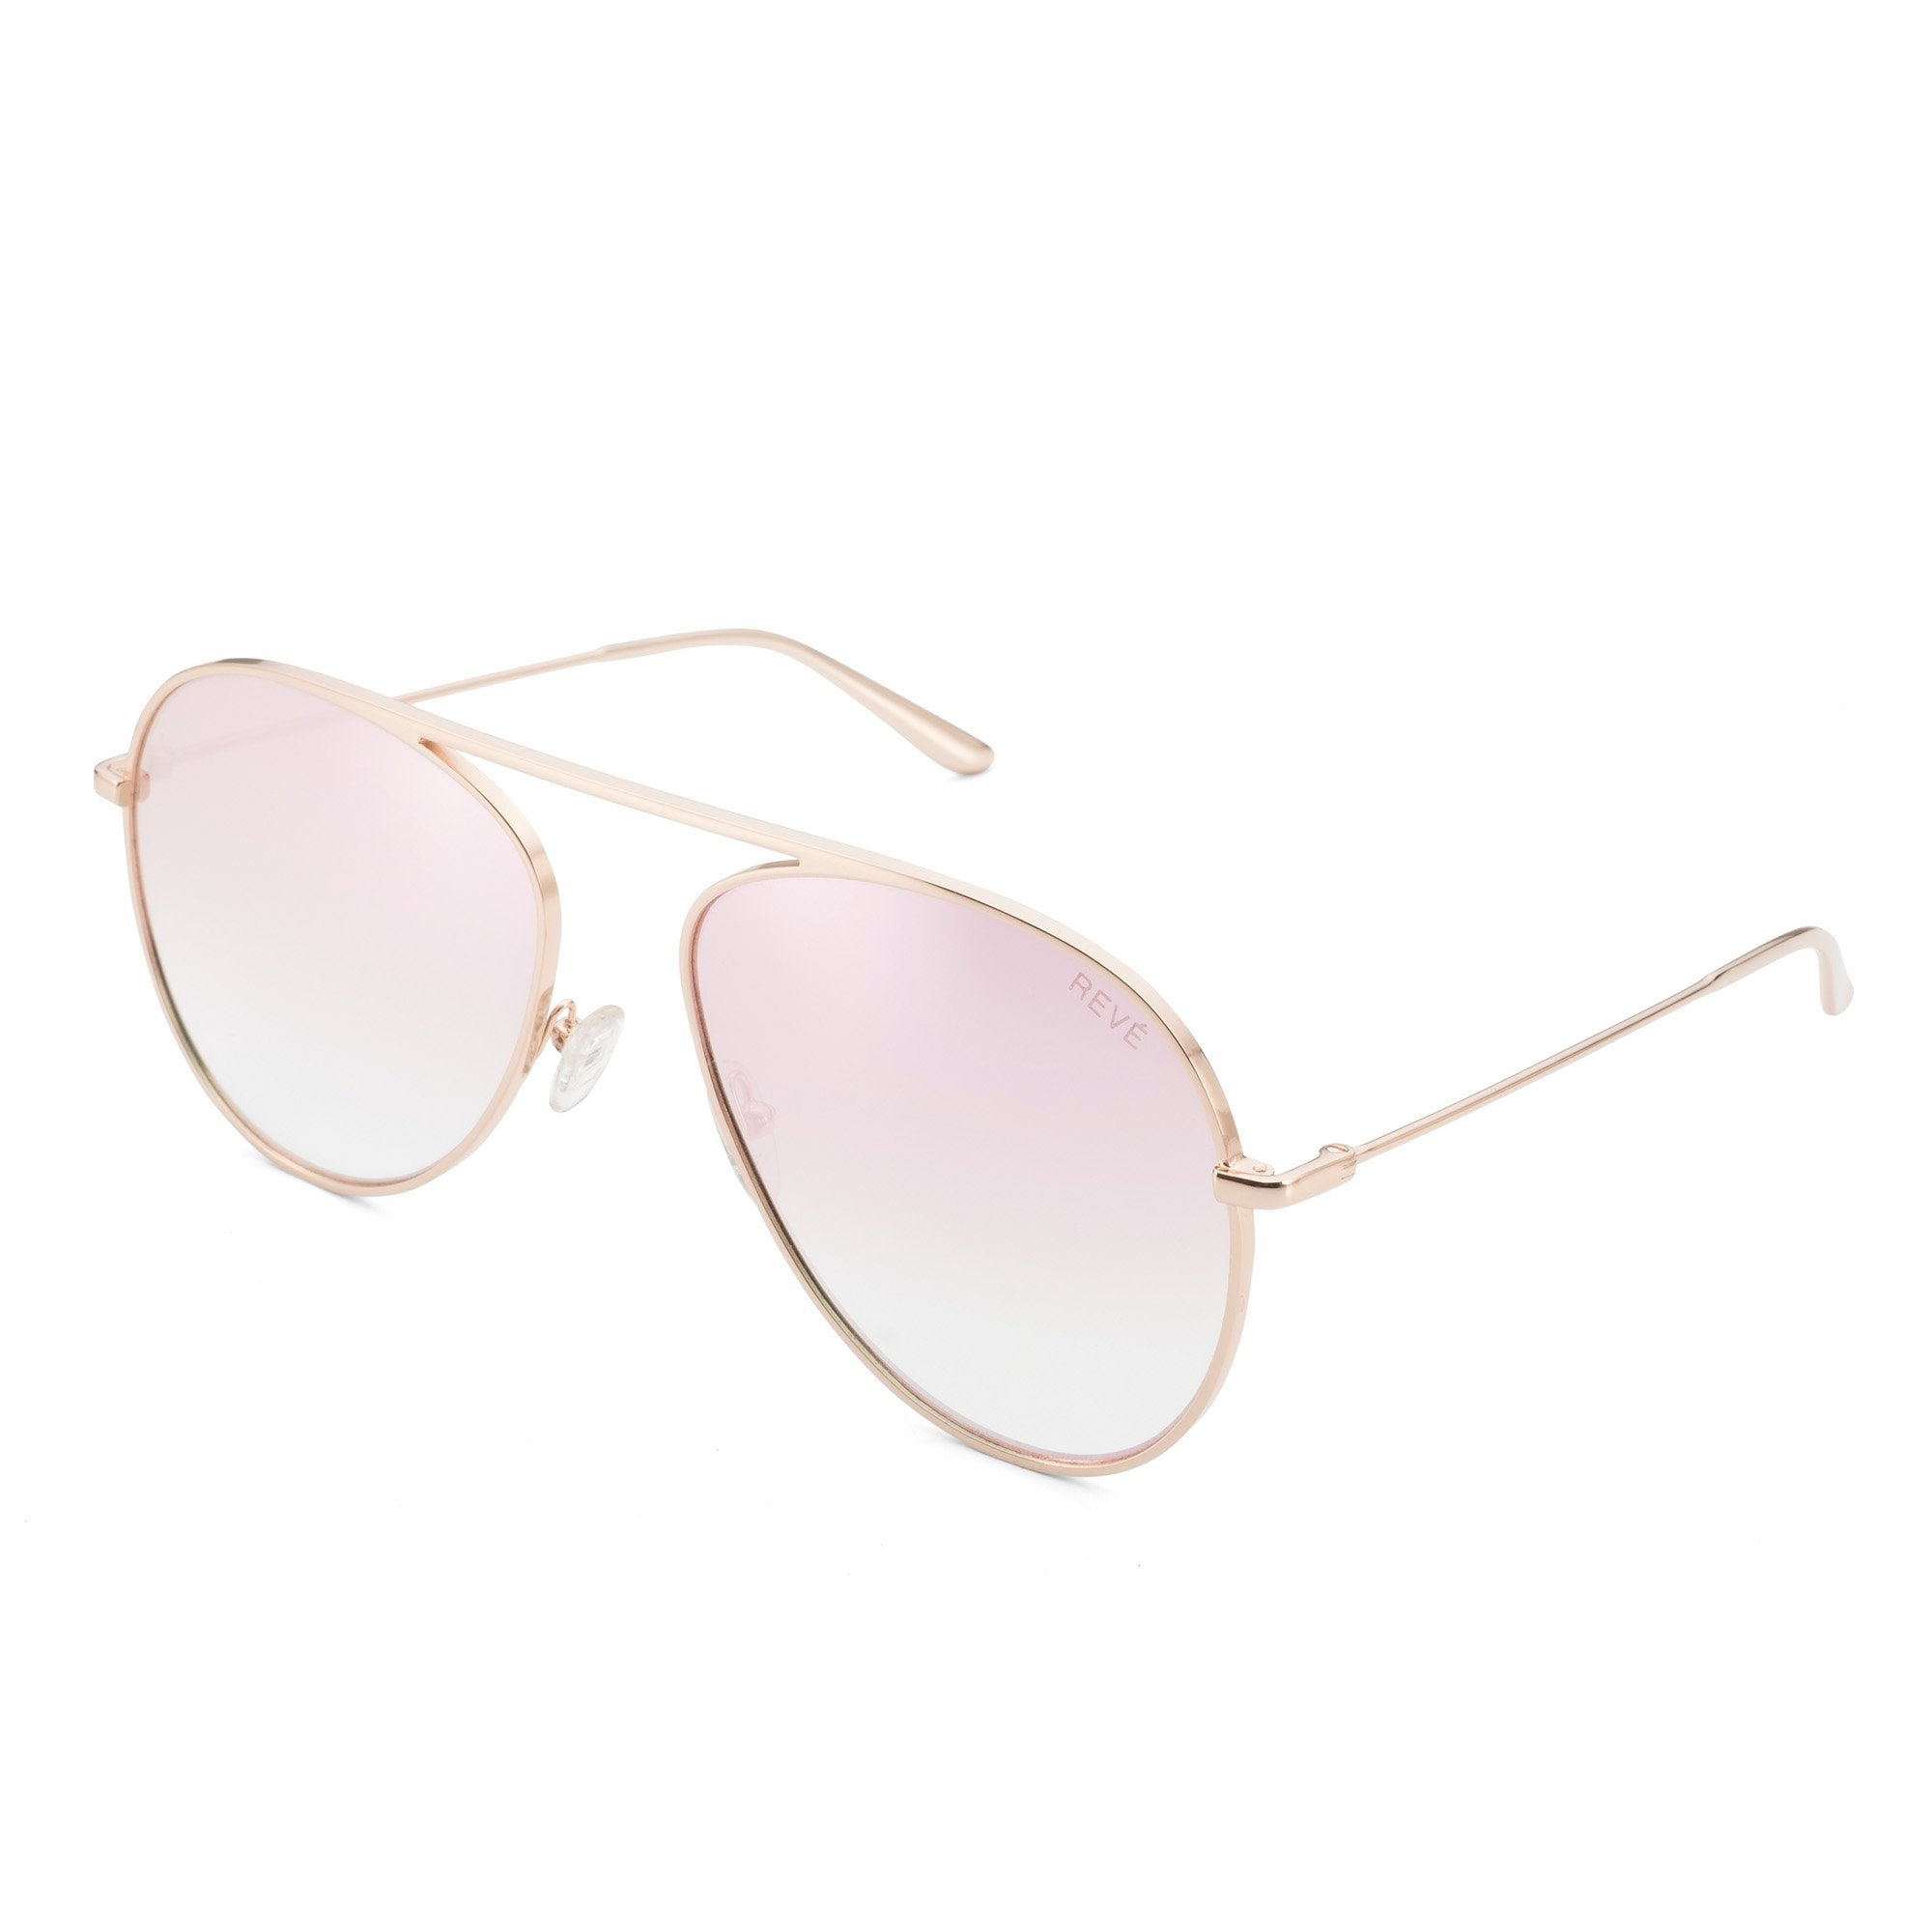 REVE by RENE glimpse aviator sunglasses